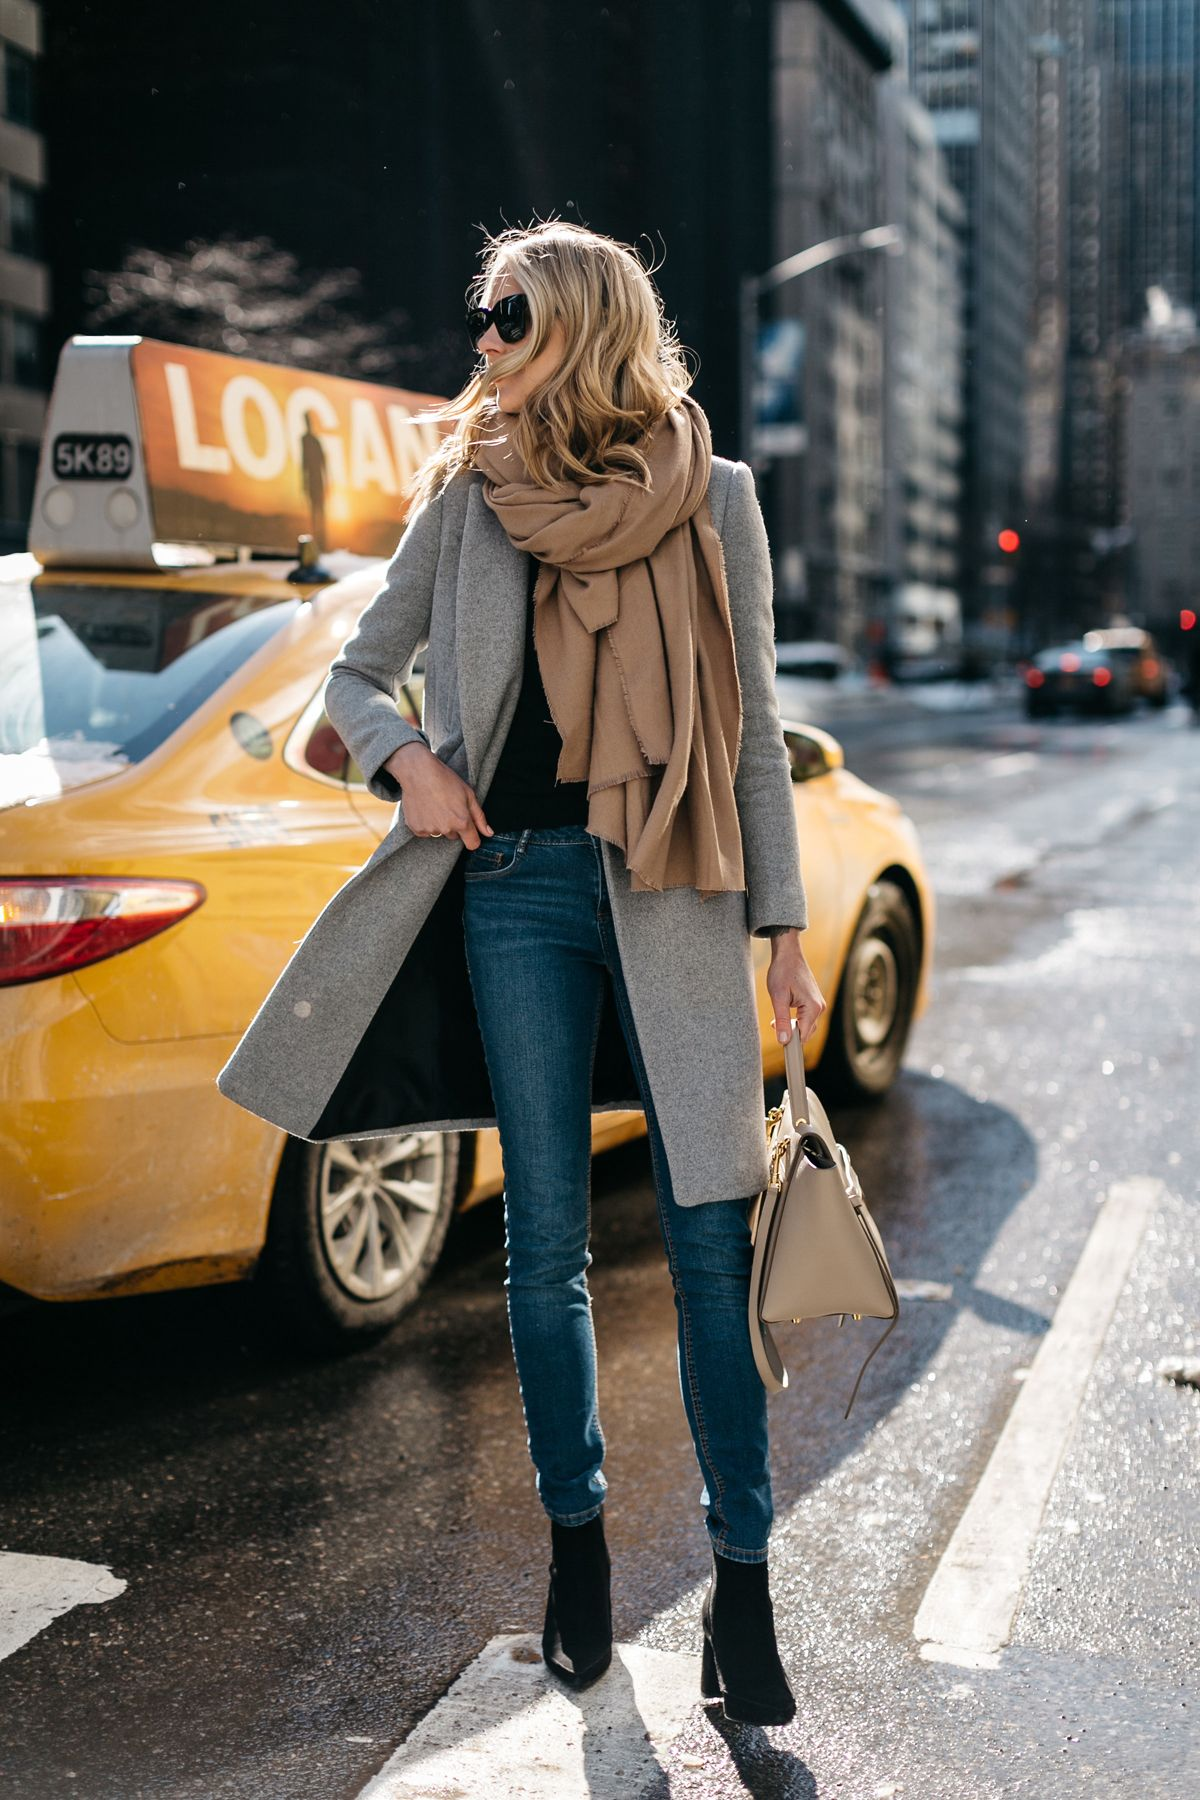 0b8e1a8b5a1 How to Dress to Impress When Traveling the World - Fashion Jackson -  blanket scarves -